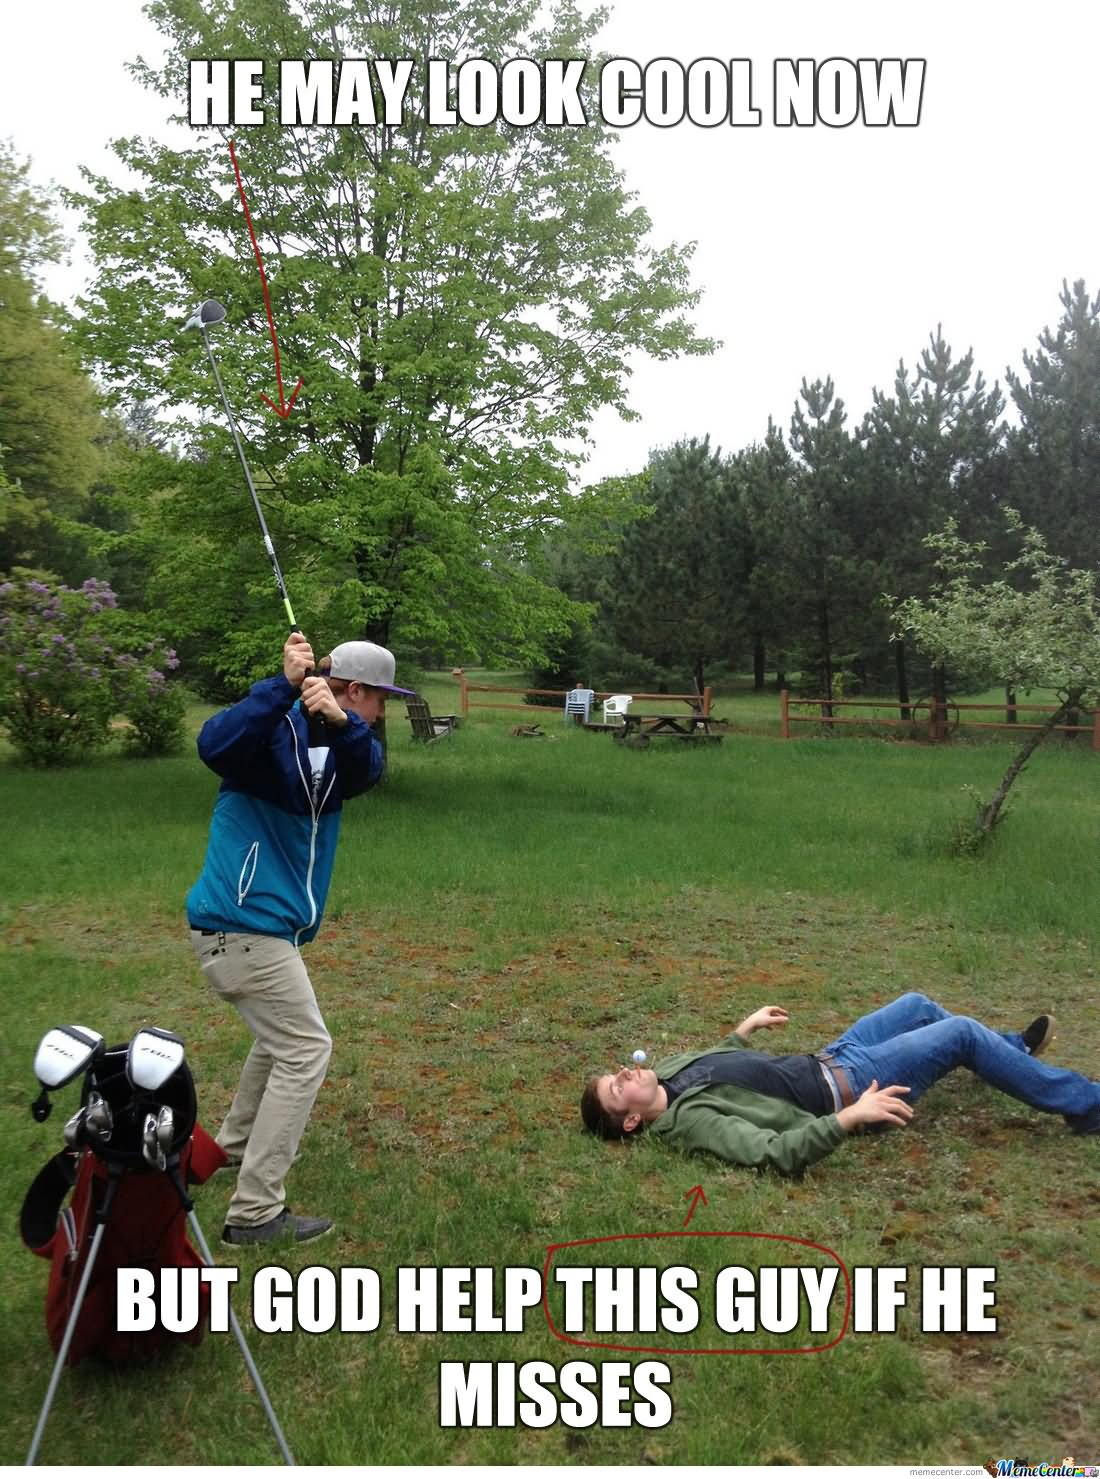 He May Look Cool Now But God Help This Guy If He Misses Funny Golf Meme Meme Picture For Facebook